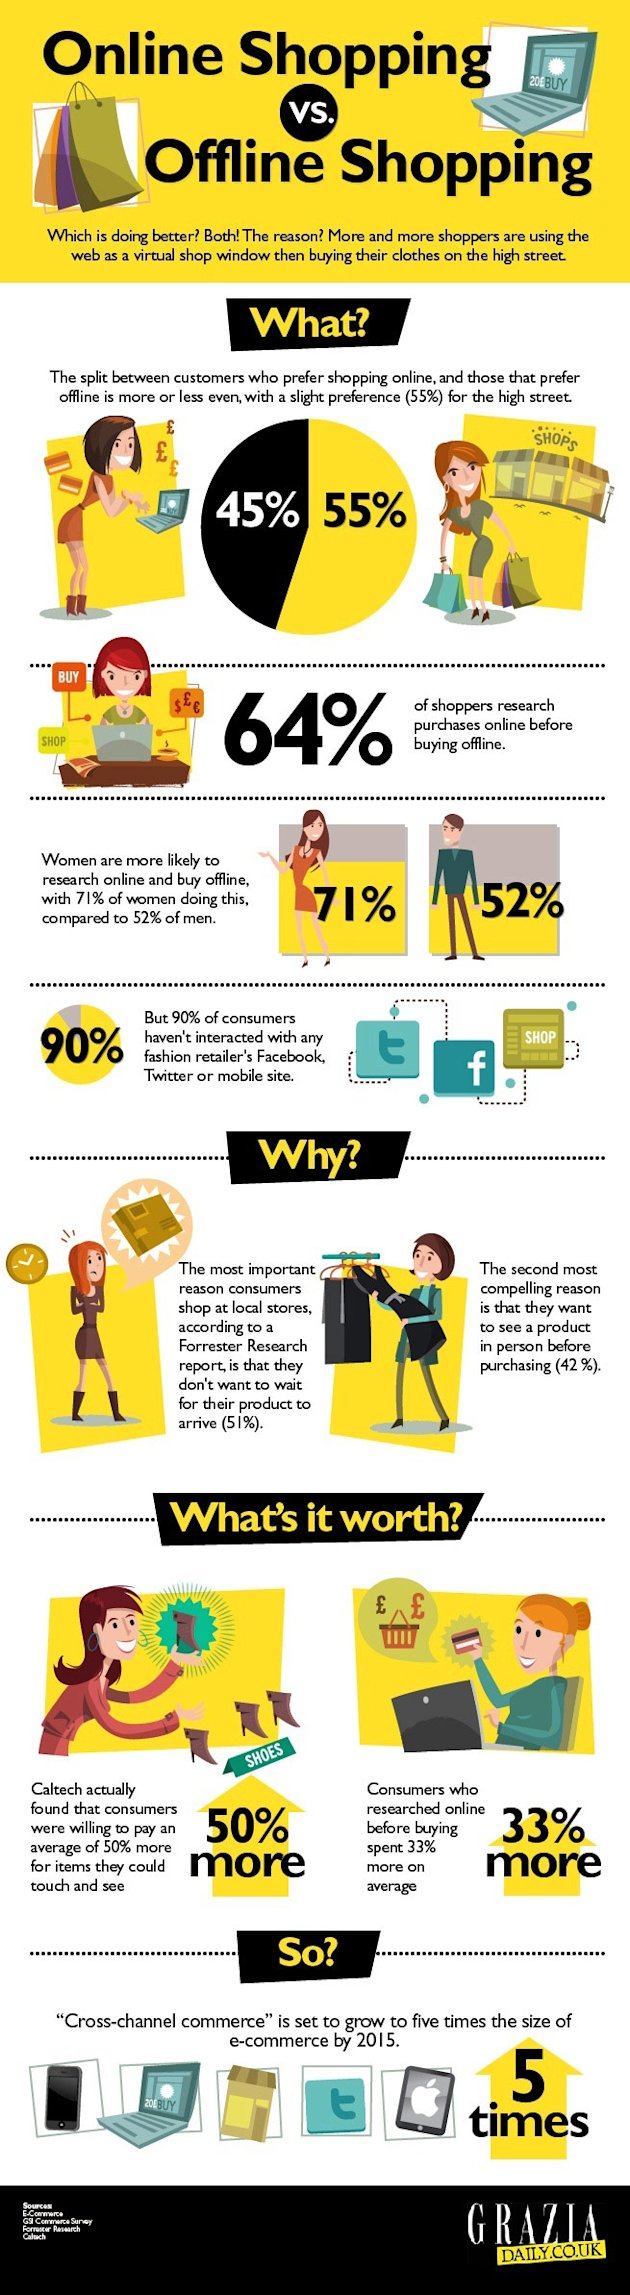 Which Is Better: Shopping On The High Street Or Online? Grazia's INFOGRAPHIC Has The Answer!